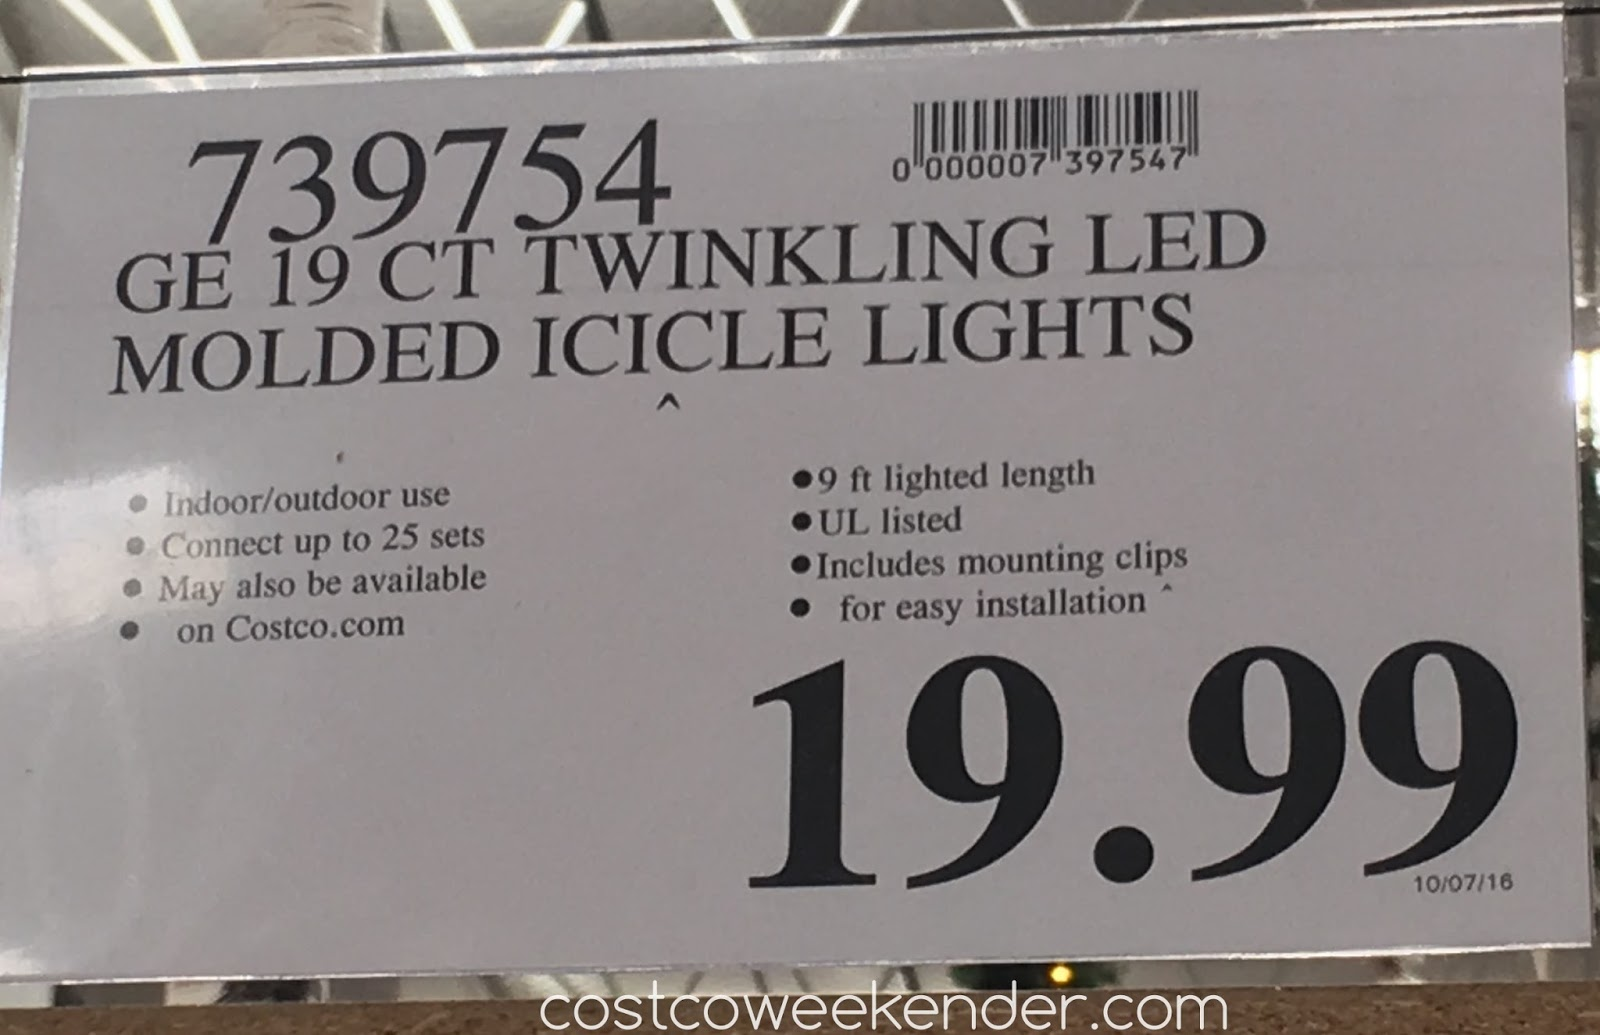 Costco 739754 - Deal for the GE Twinkling LED Molded Icicle Lights at Costco